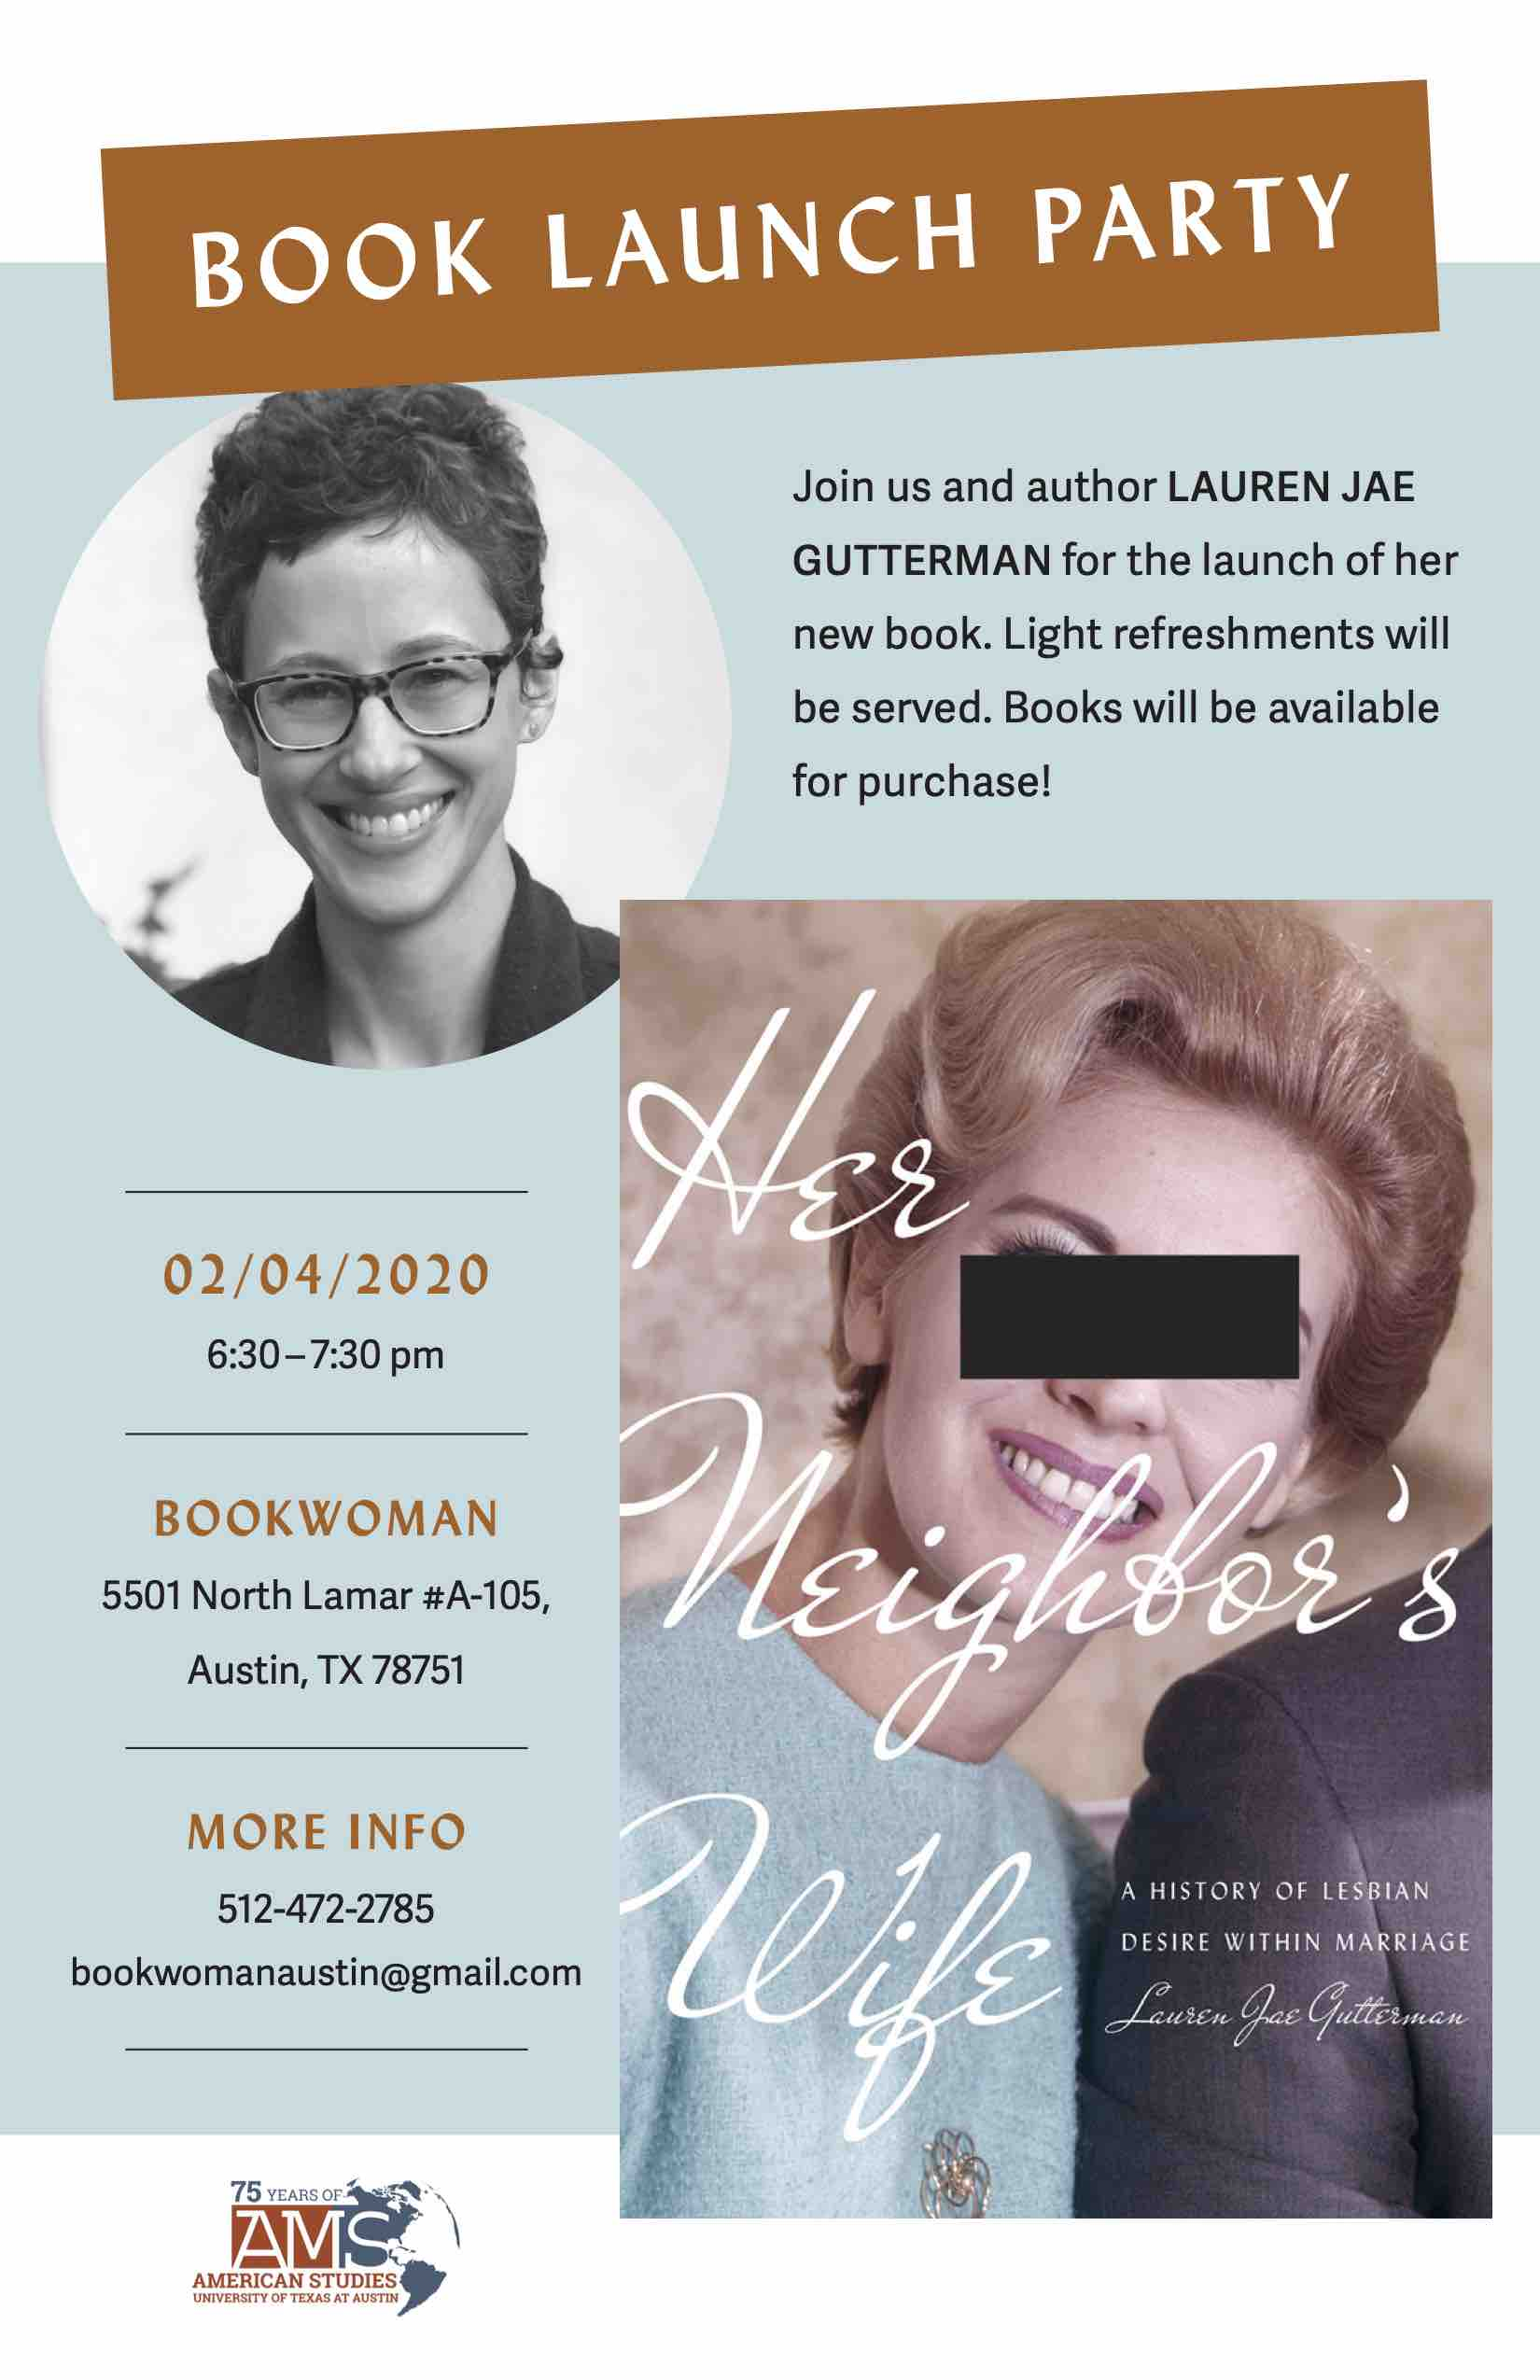 Book Launch Party for Dr. Lauren Gutterman's New Book, Her Neighbor's Wife